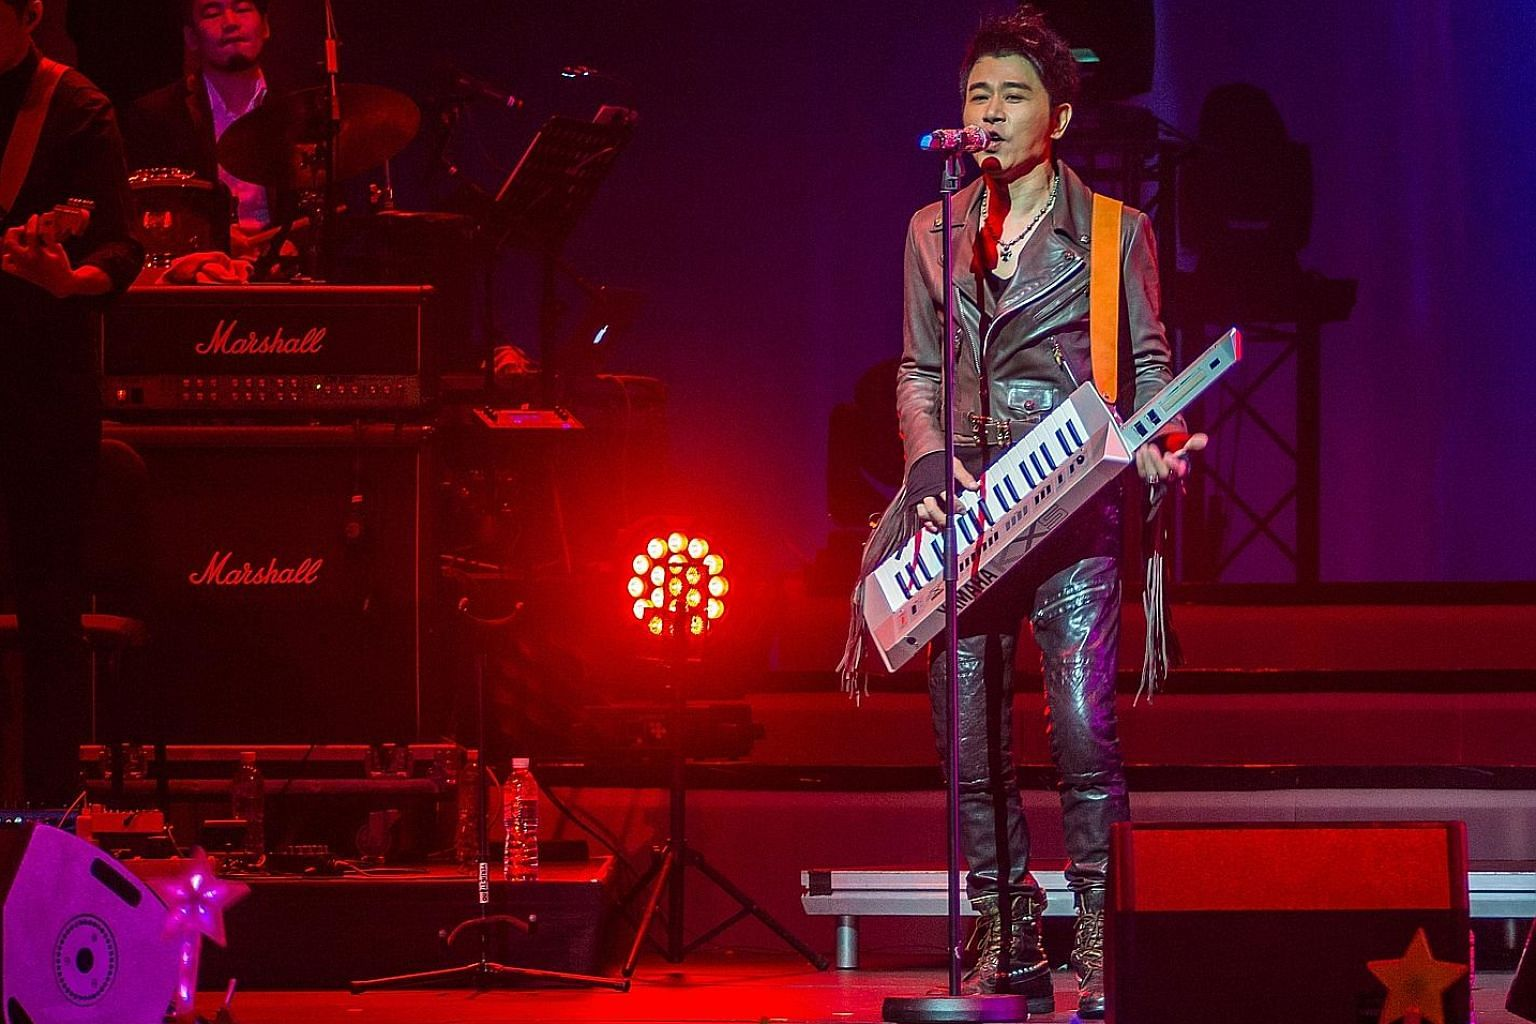 Mandopop veteran Sky Wu's concert at The Star Theatre lasted more than three hours.